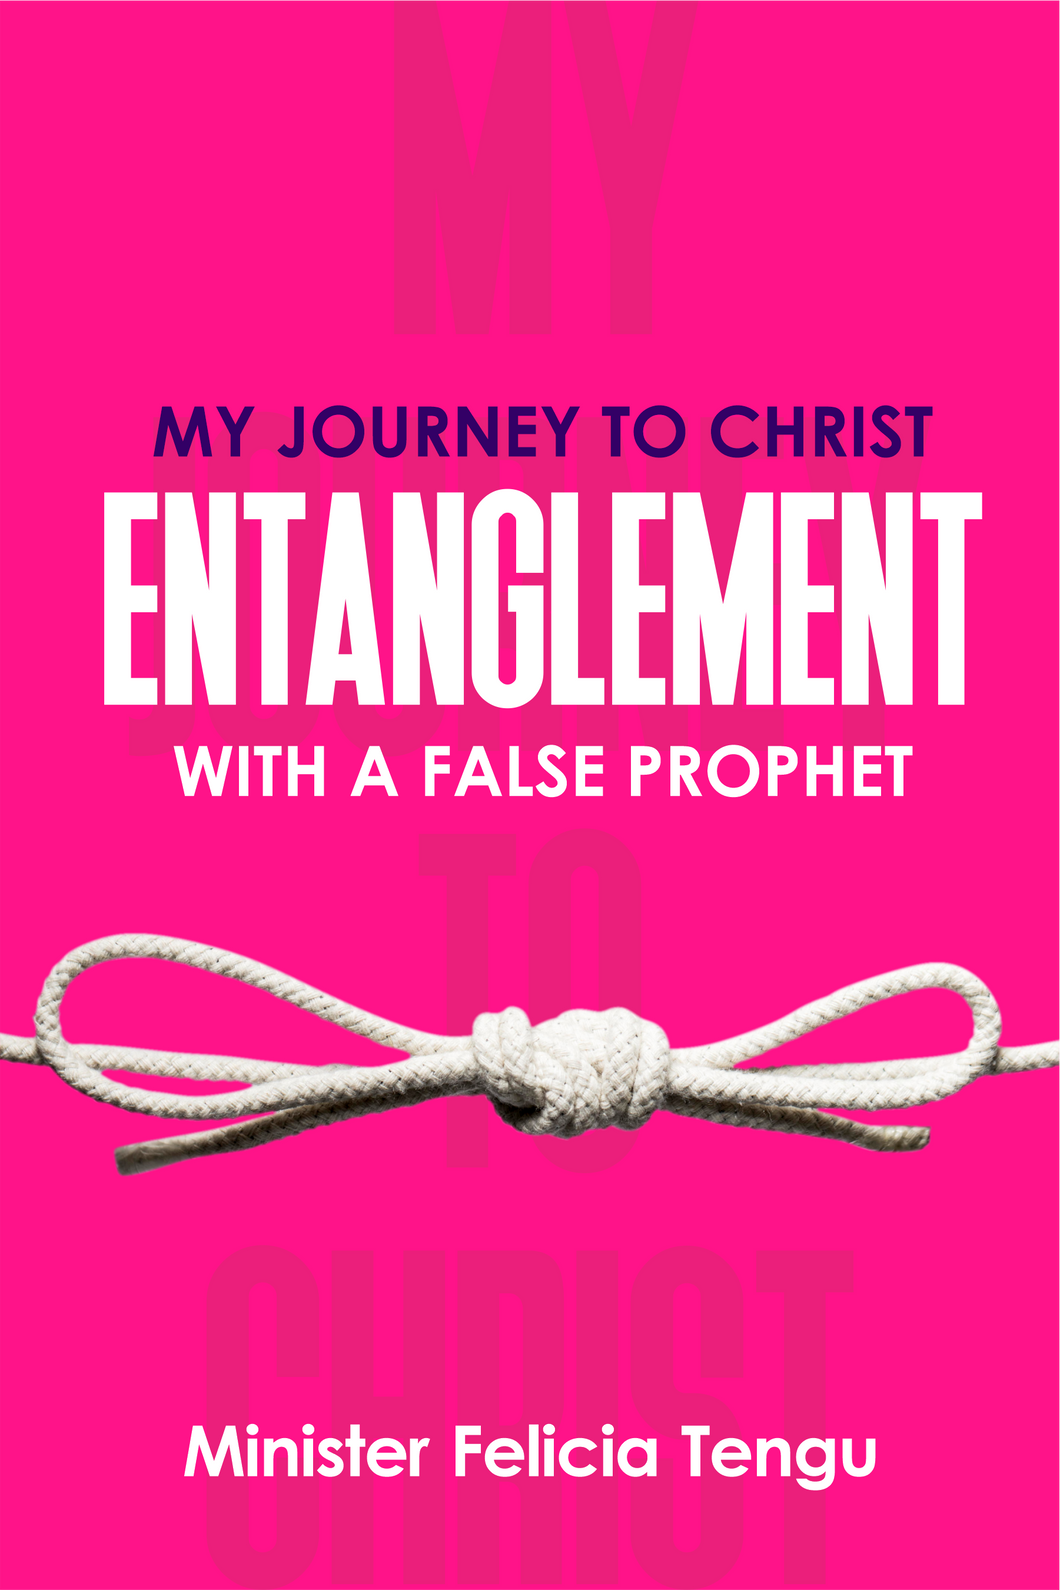 My Journey to Christ: Entanglement with a False Prophet